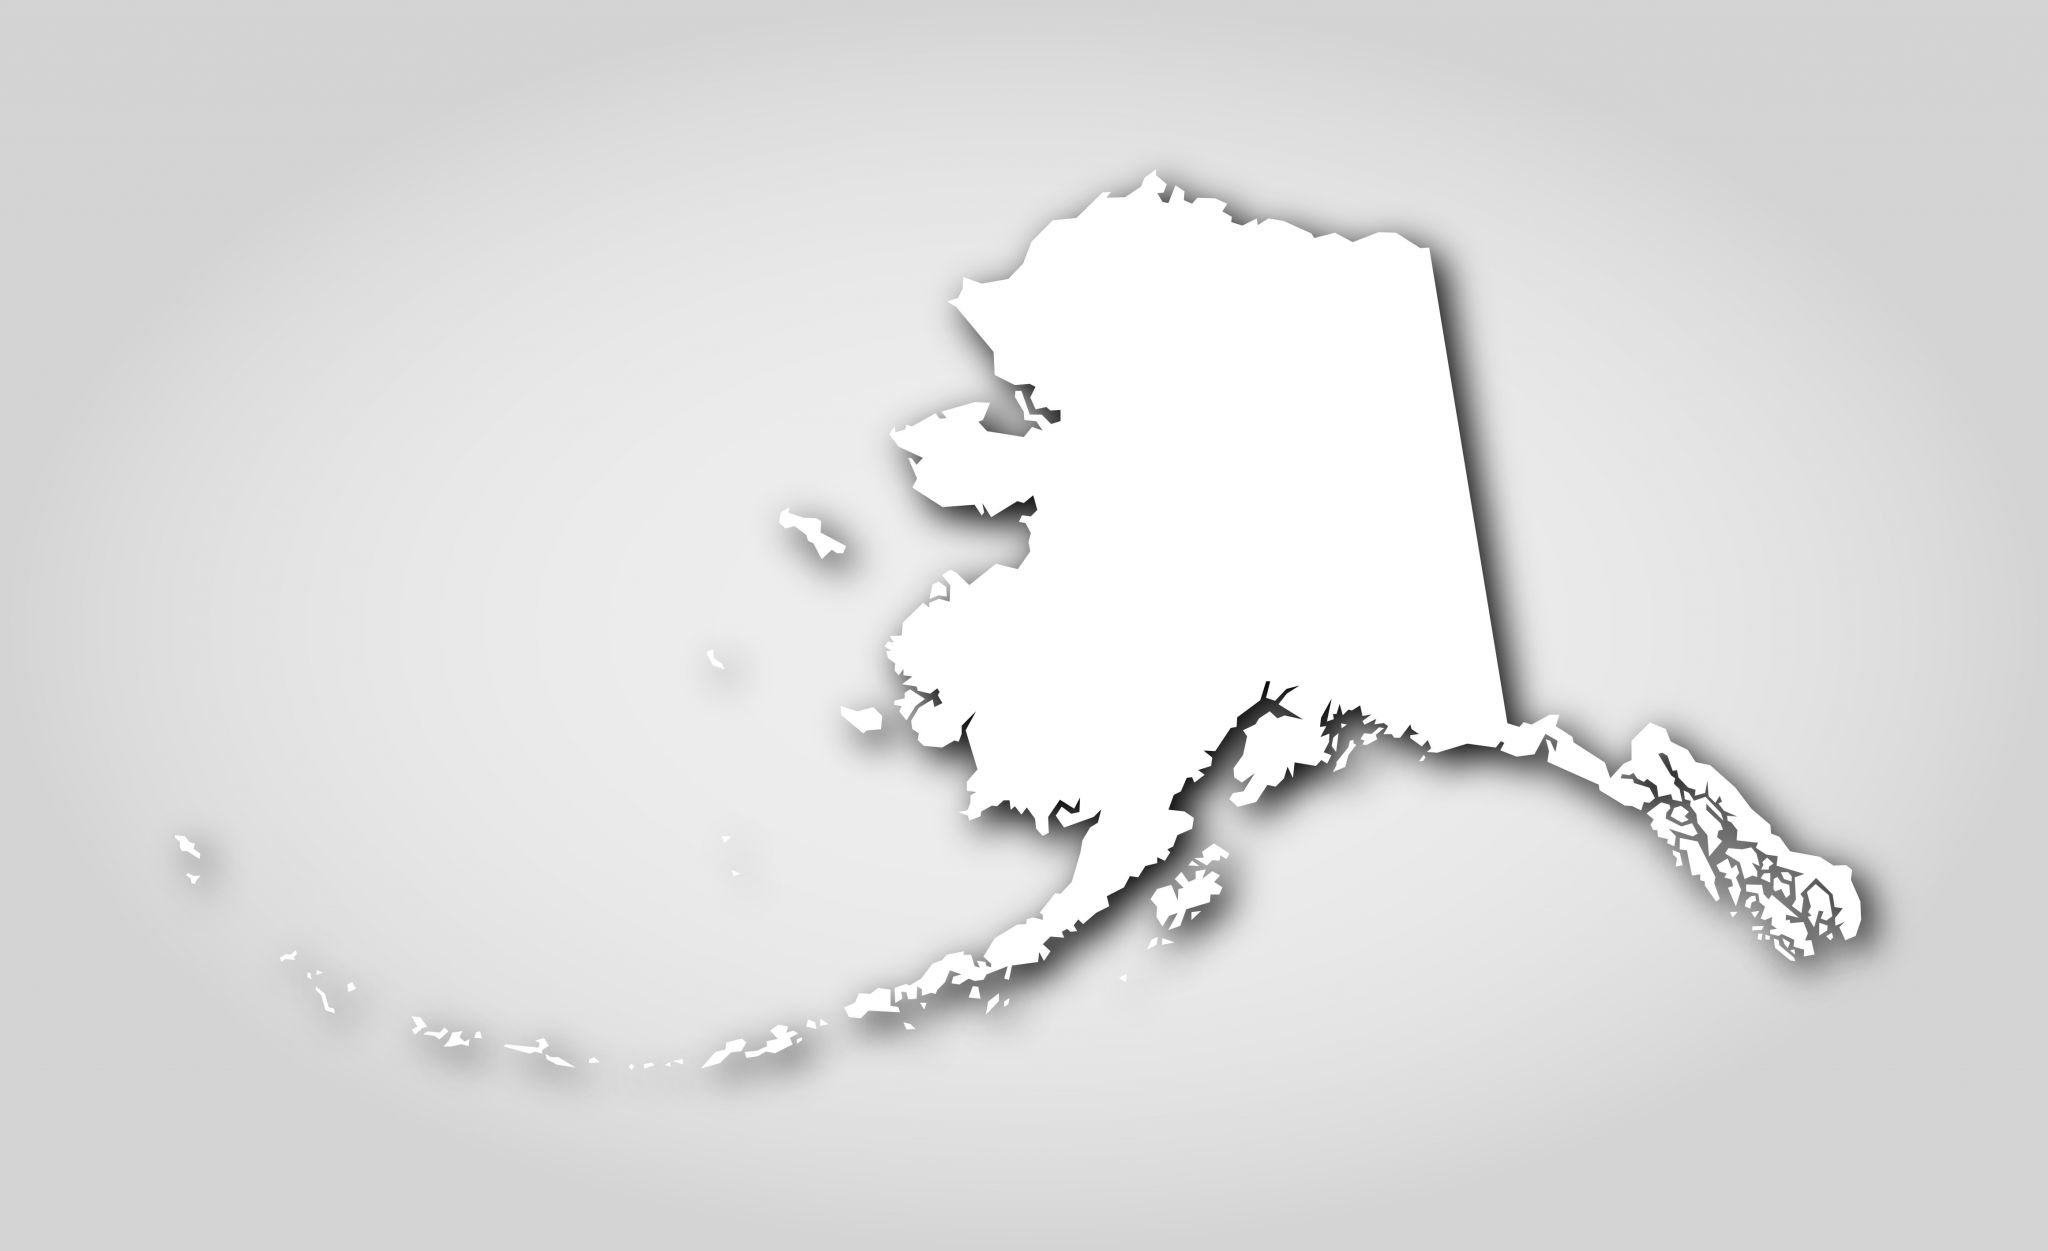 Alaska earthquake watch prompts tsunami warning